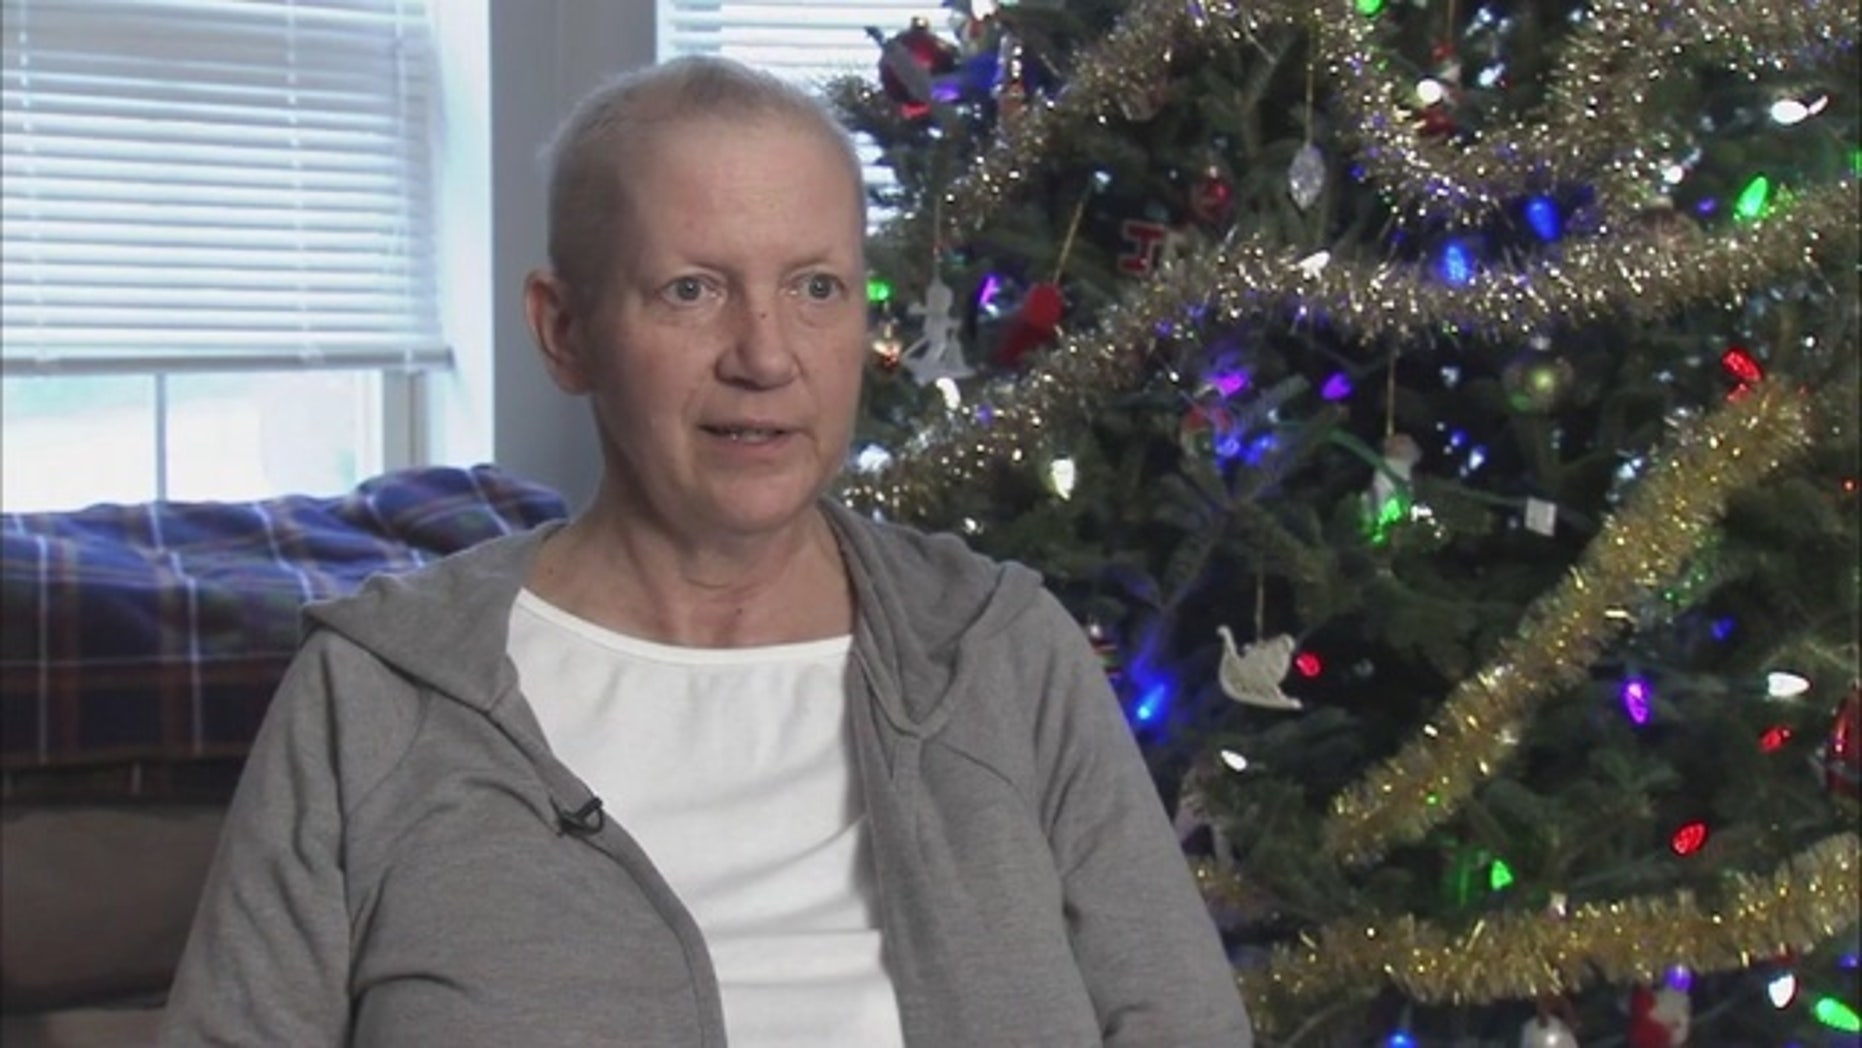 Mary Jo Hartman, 56, has vowed to spend her final days volunteering.